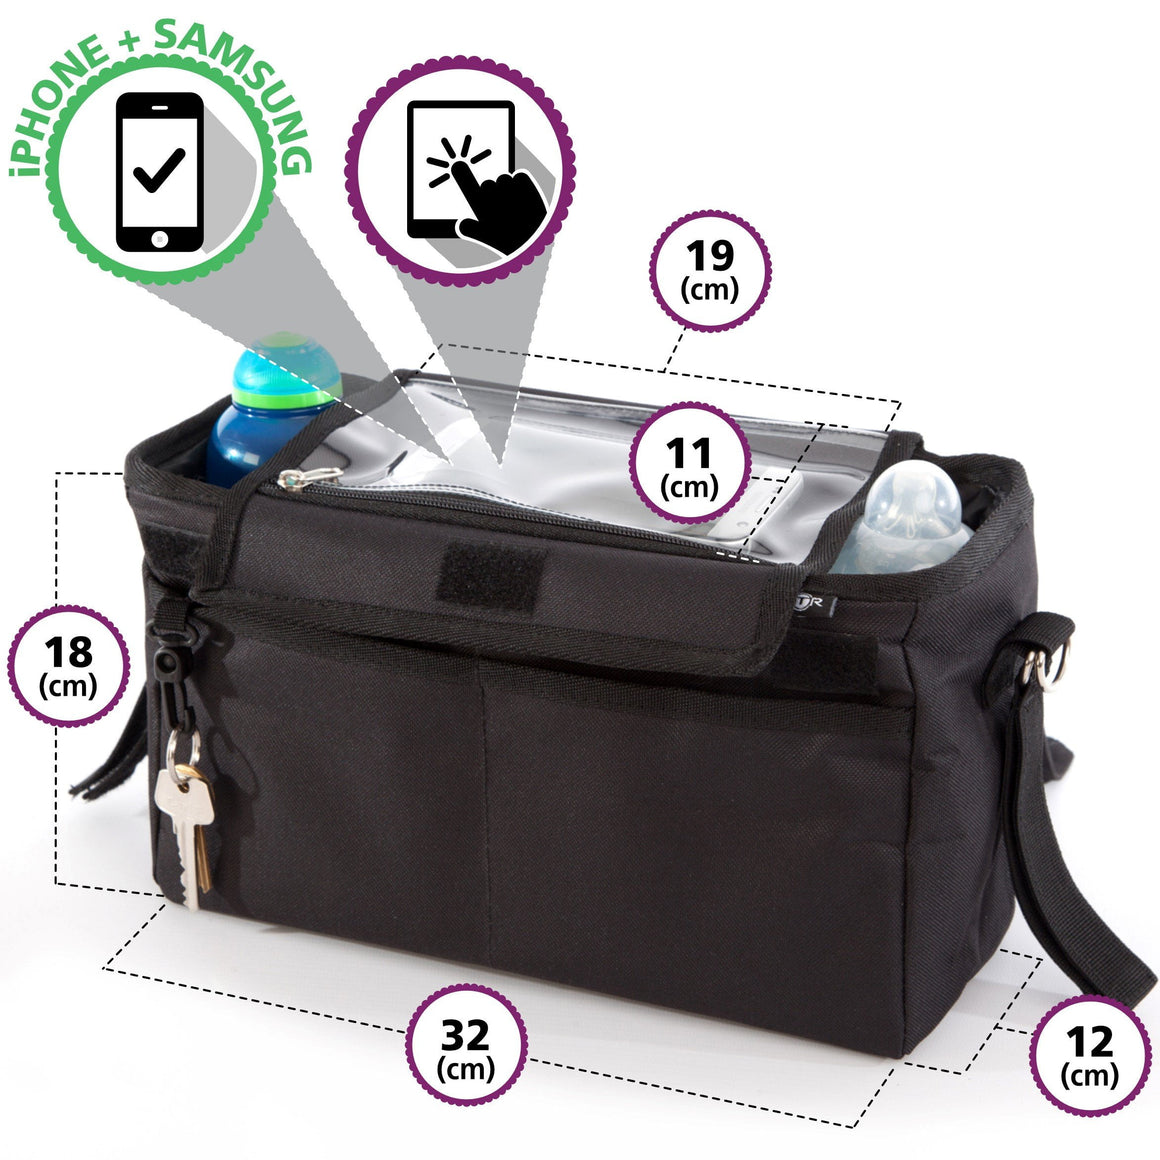 BTR Pram Buggy Organiser Storage Bag With Phone Pocket & Pram Hooks